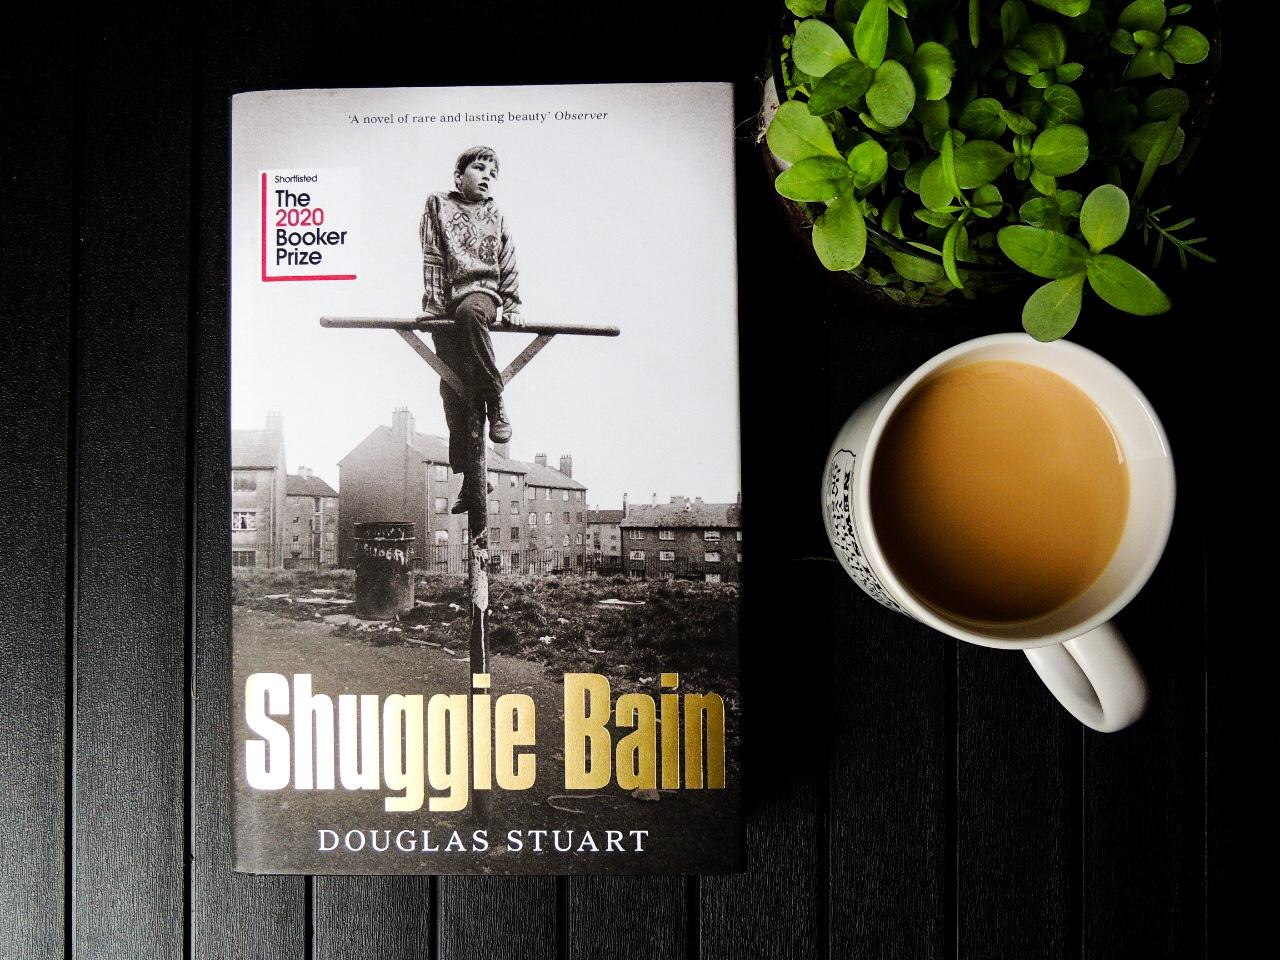 image of the book cover for Shuggie Bain